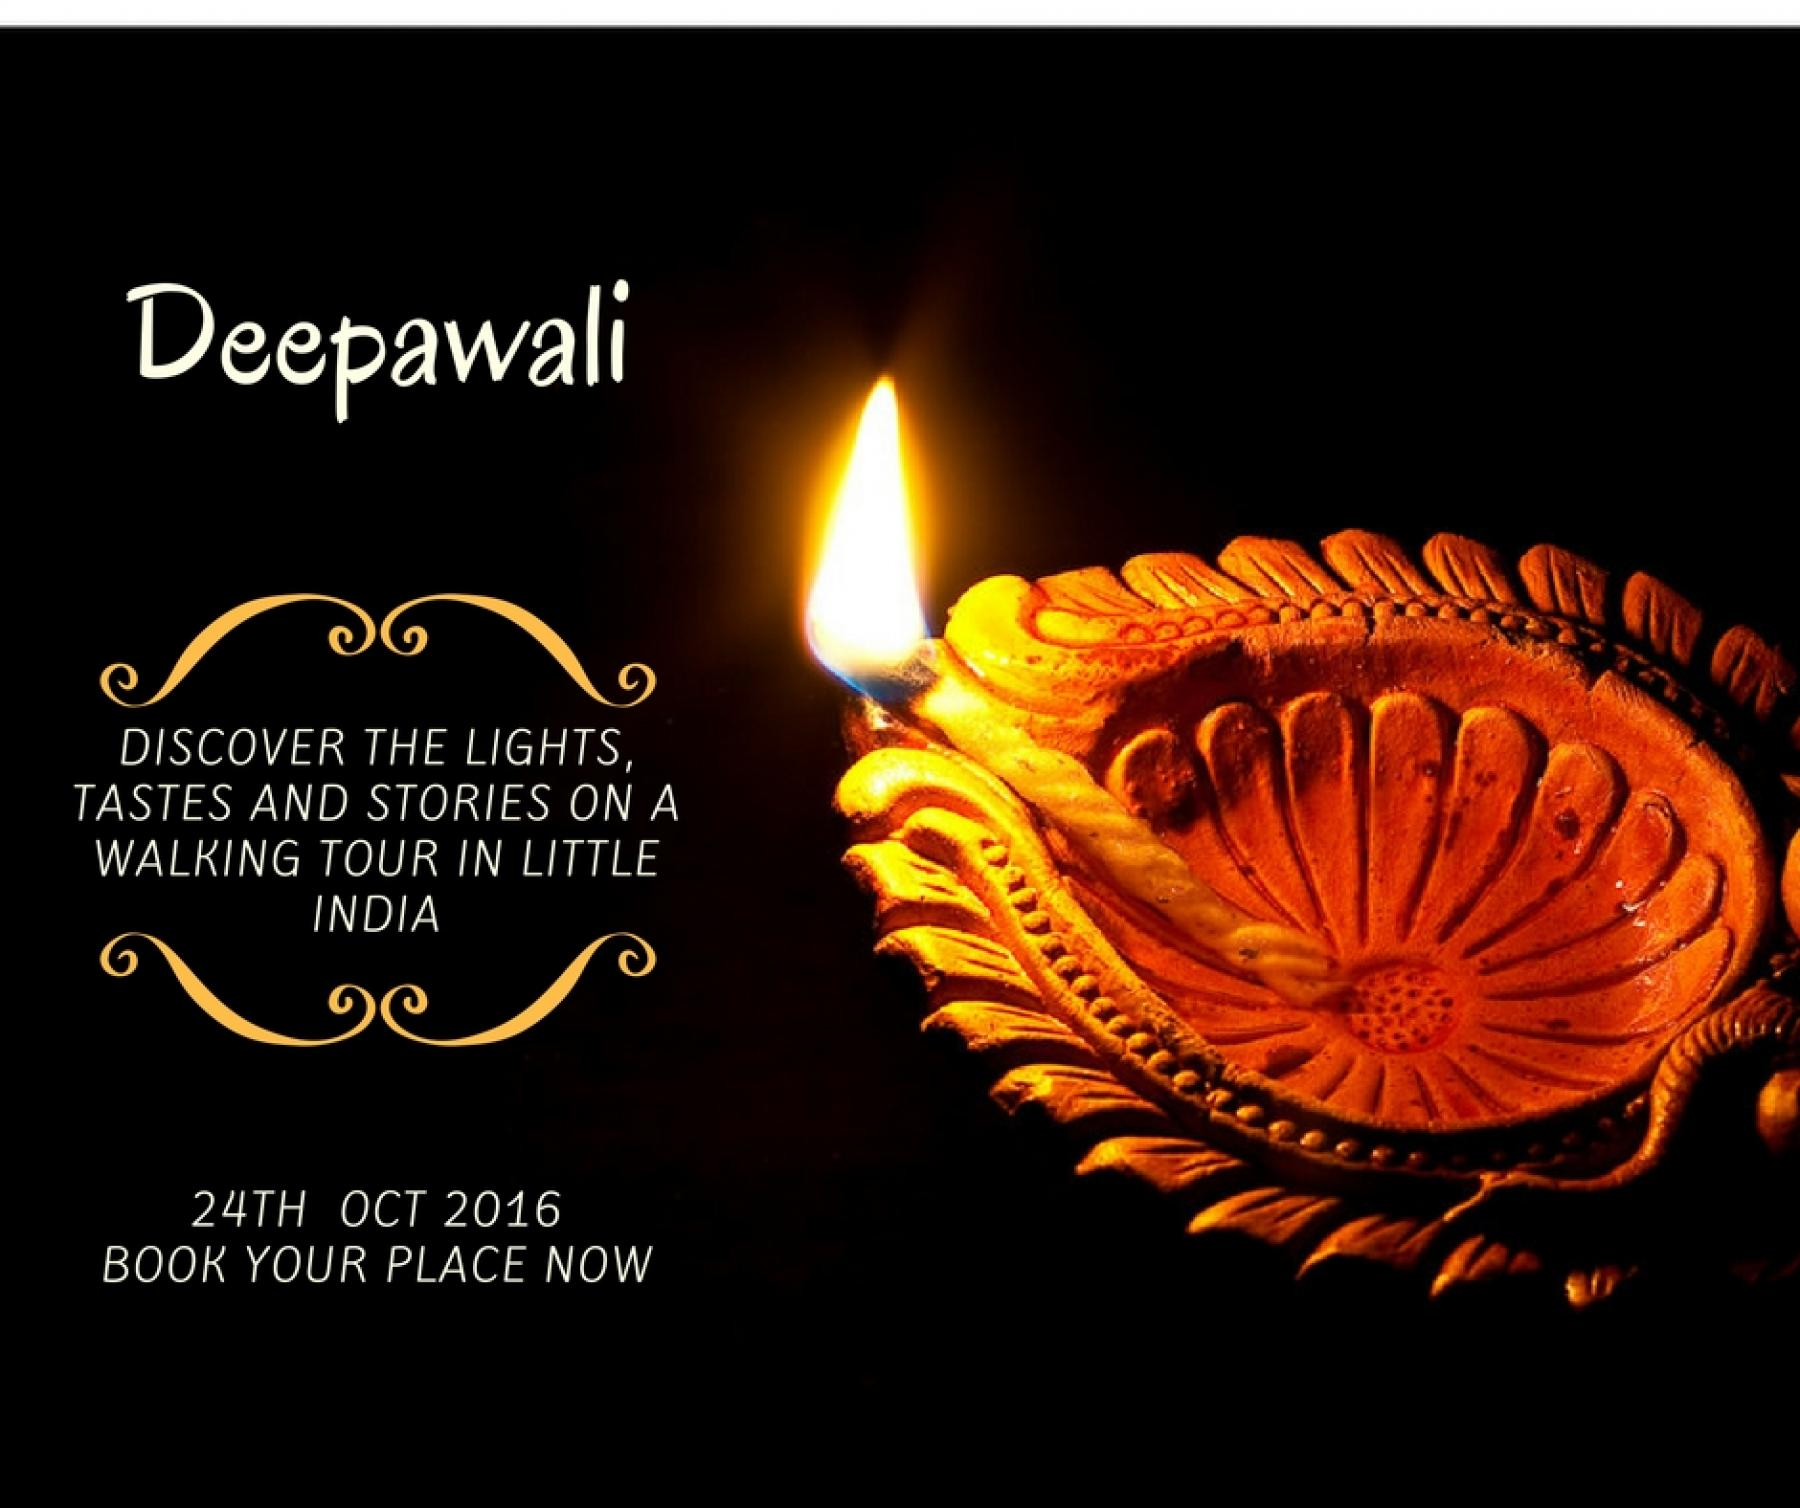 Discover the Lights, Tastes and Stories of Deepawali starting at Little India Arcade Singapore